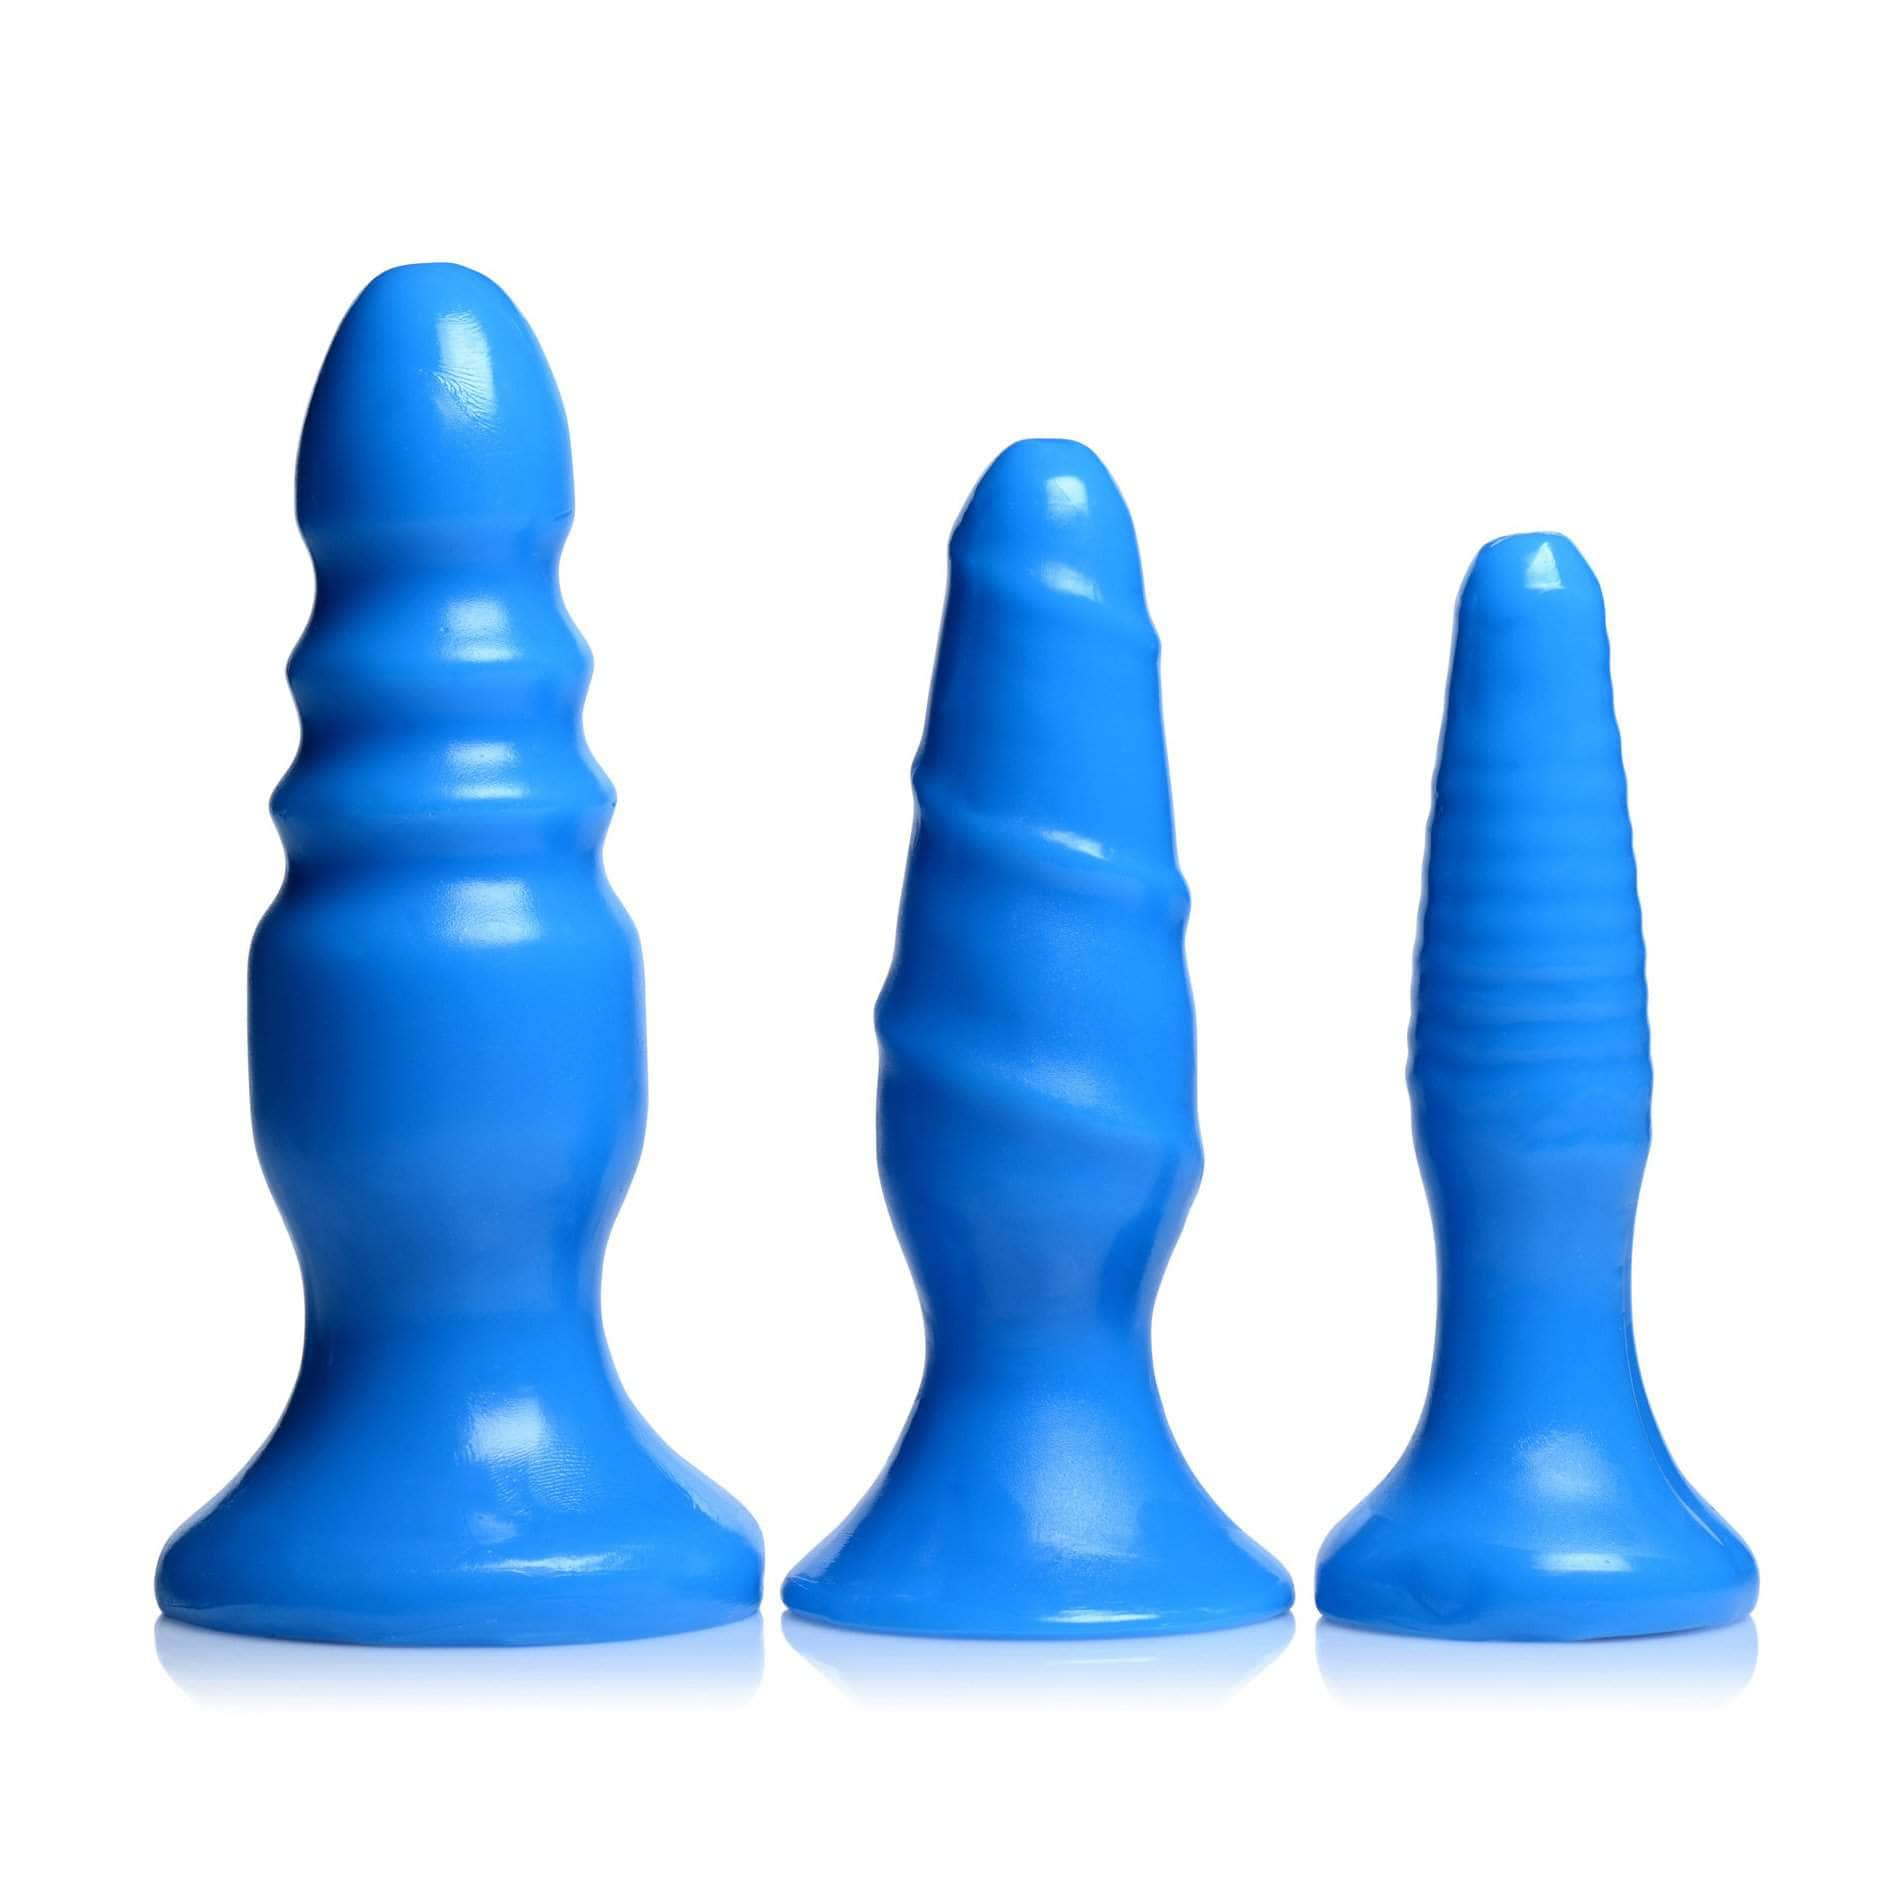 Vibrating Anal Fun Trio - Blue